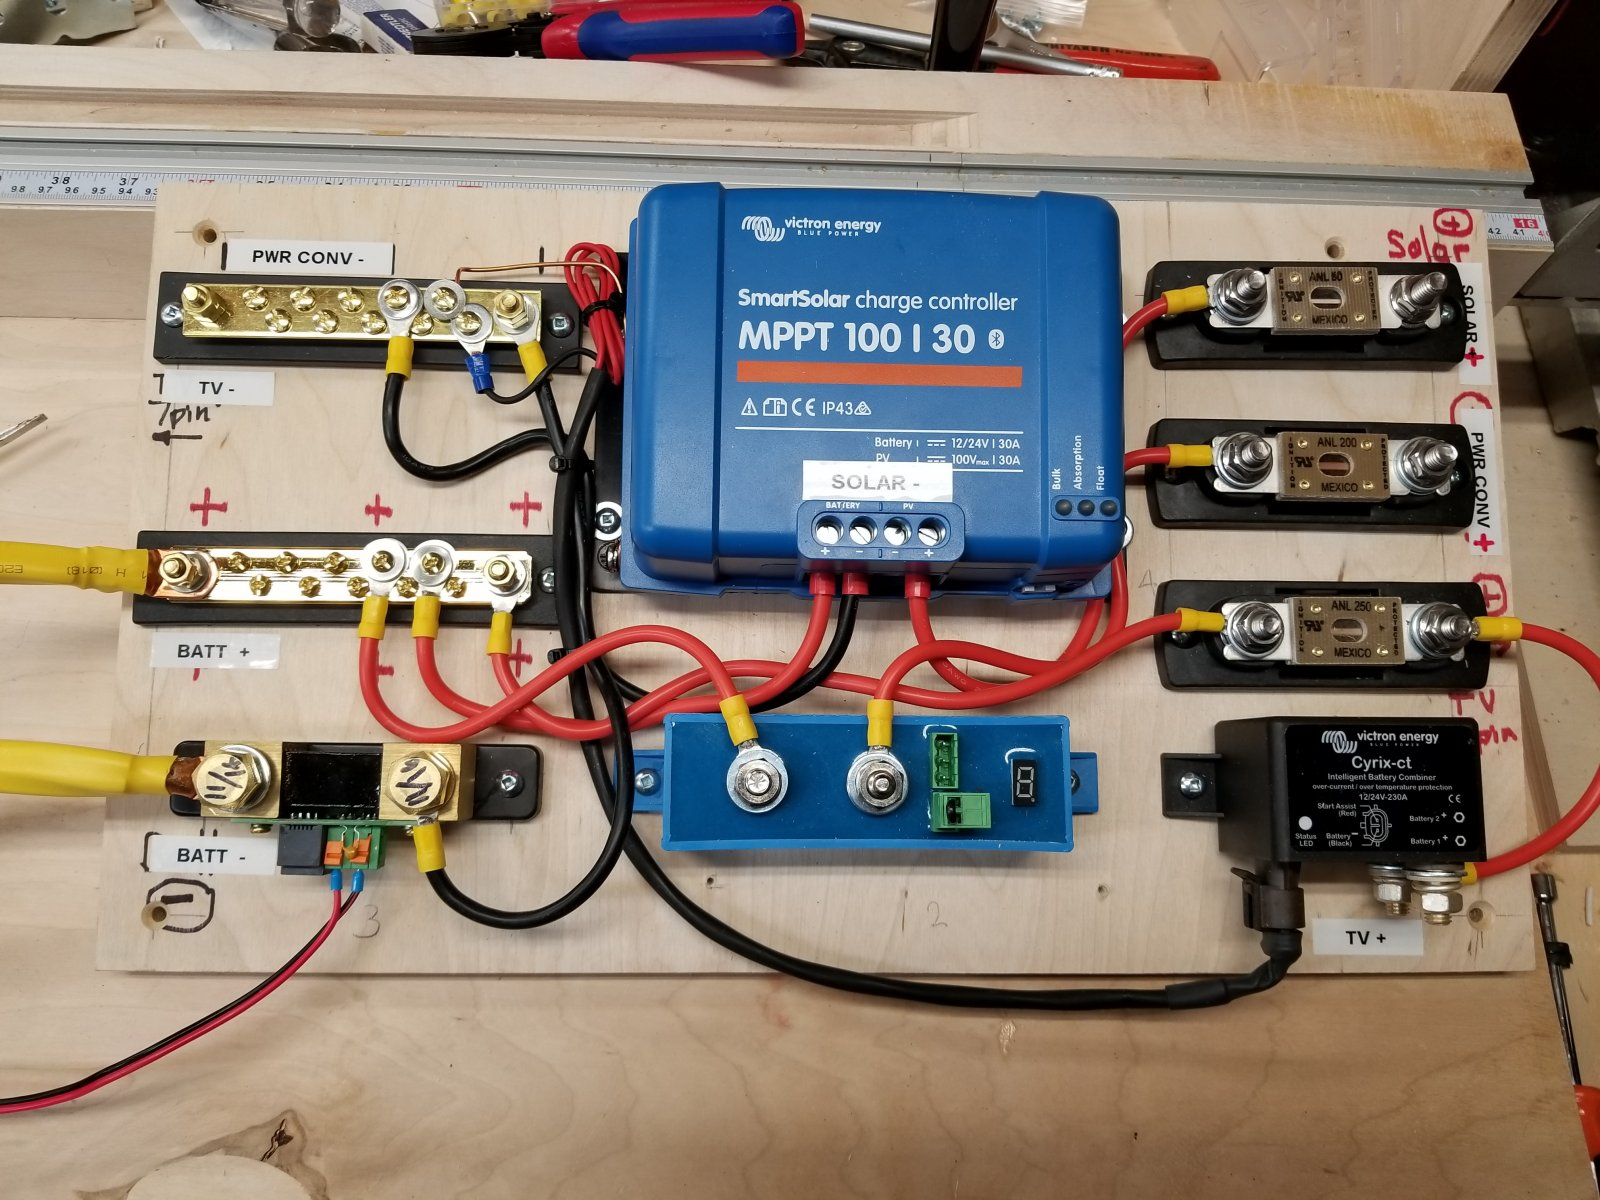 Click image for larger version  Name:solar-lion power layout ready for install v4.jpg Views:247 Size:325.6 KB ID:311846